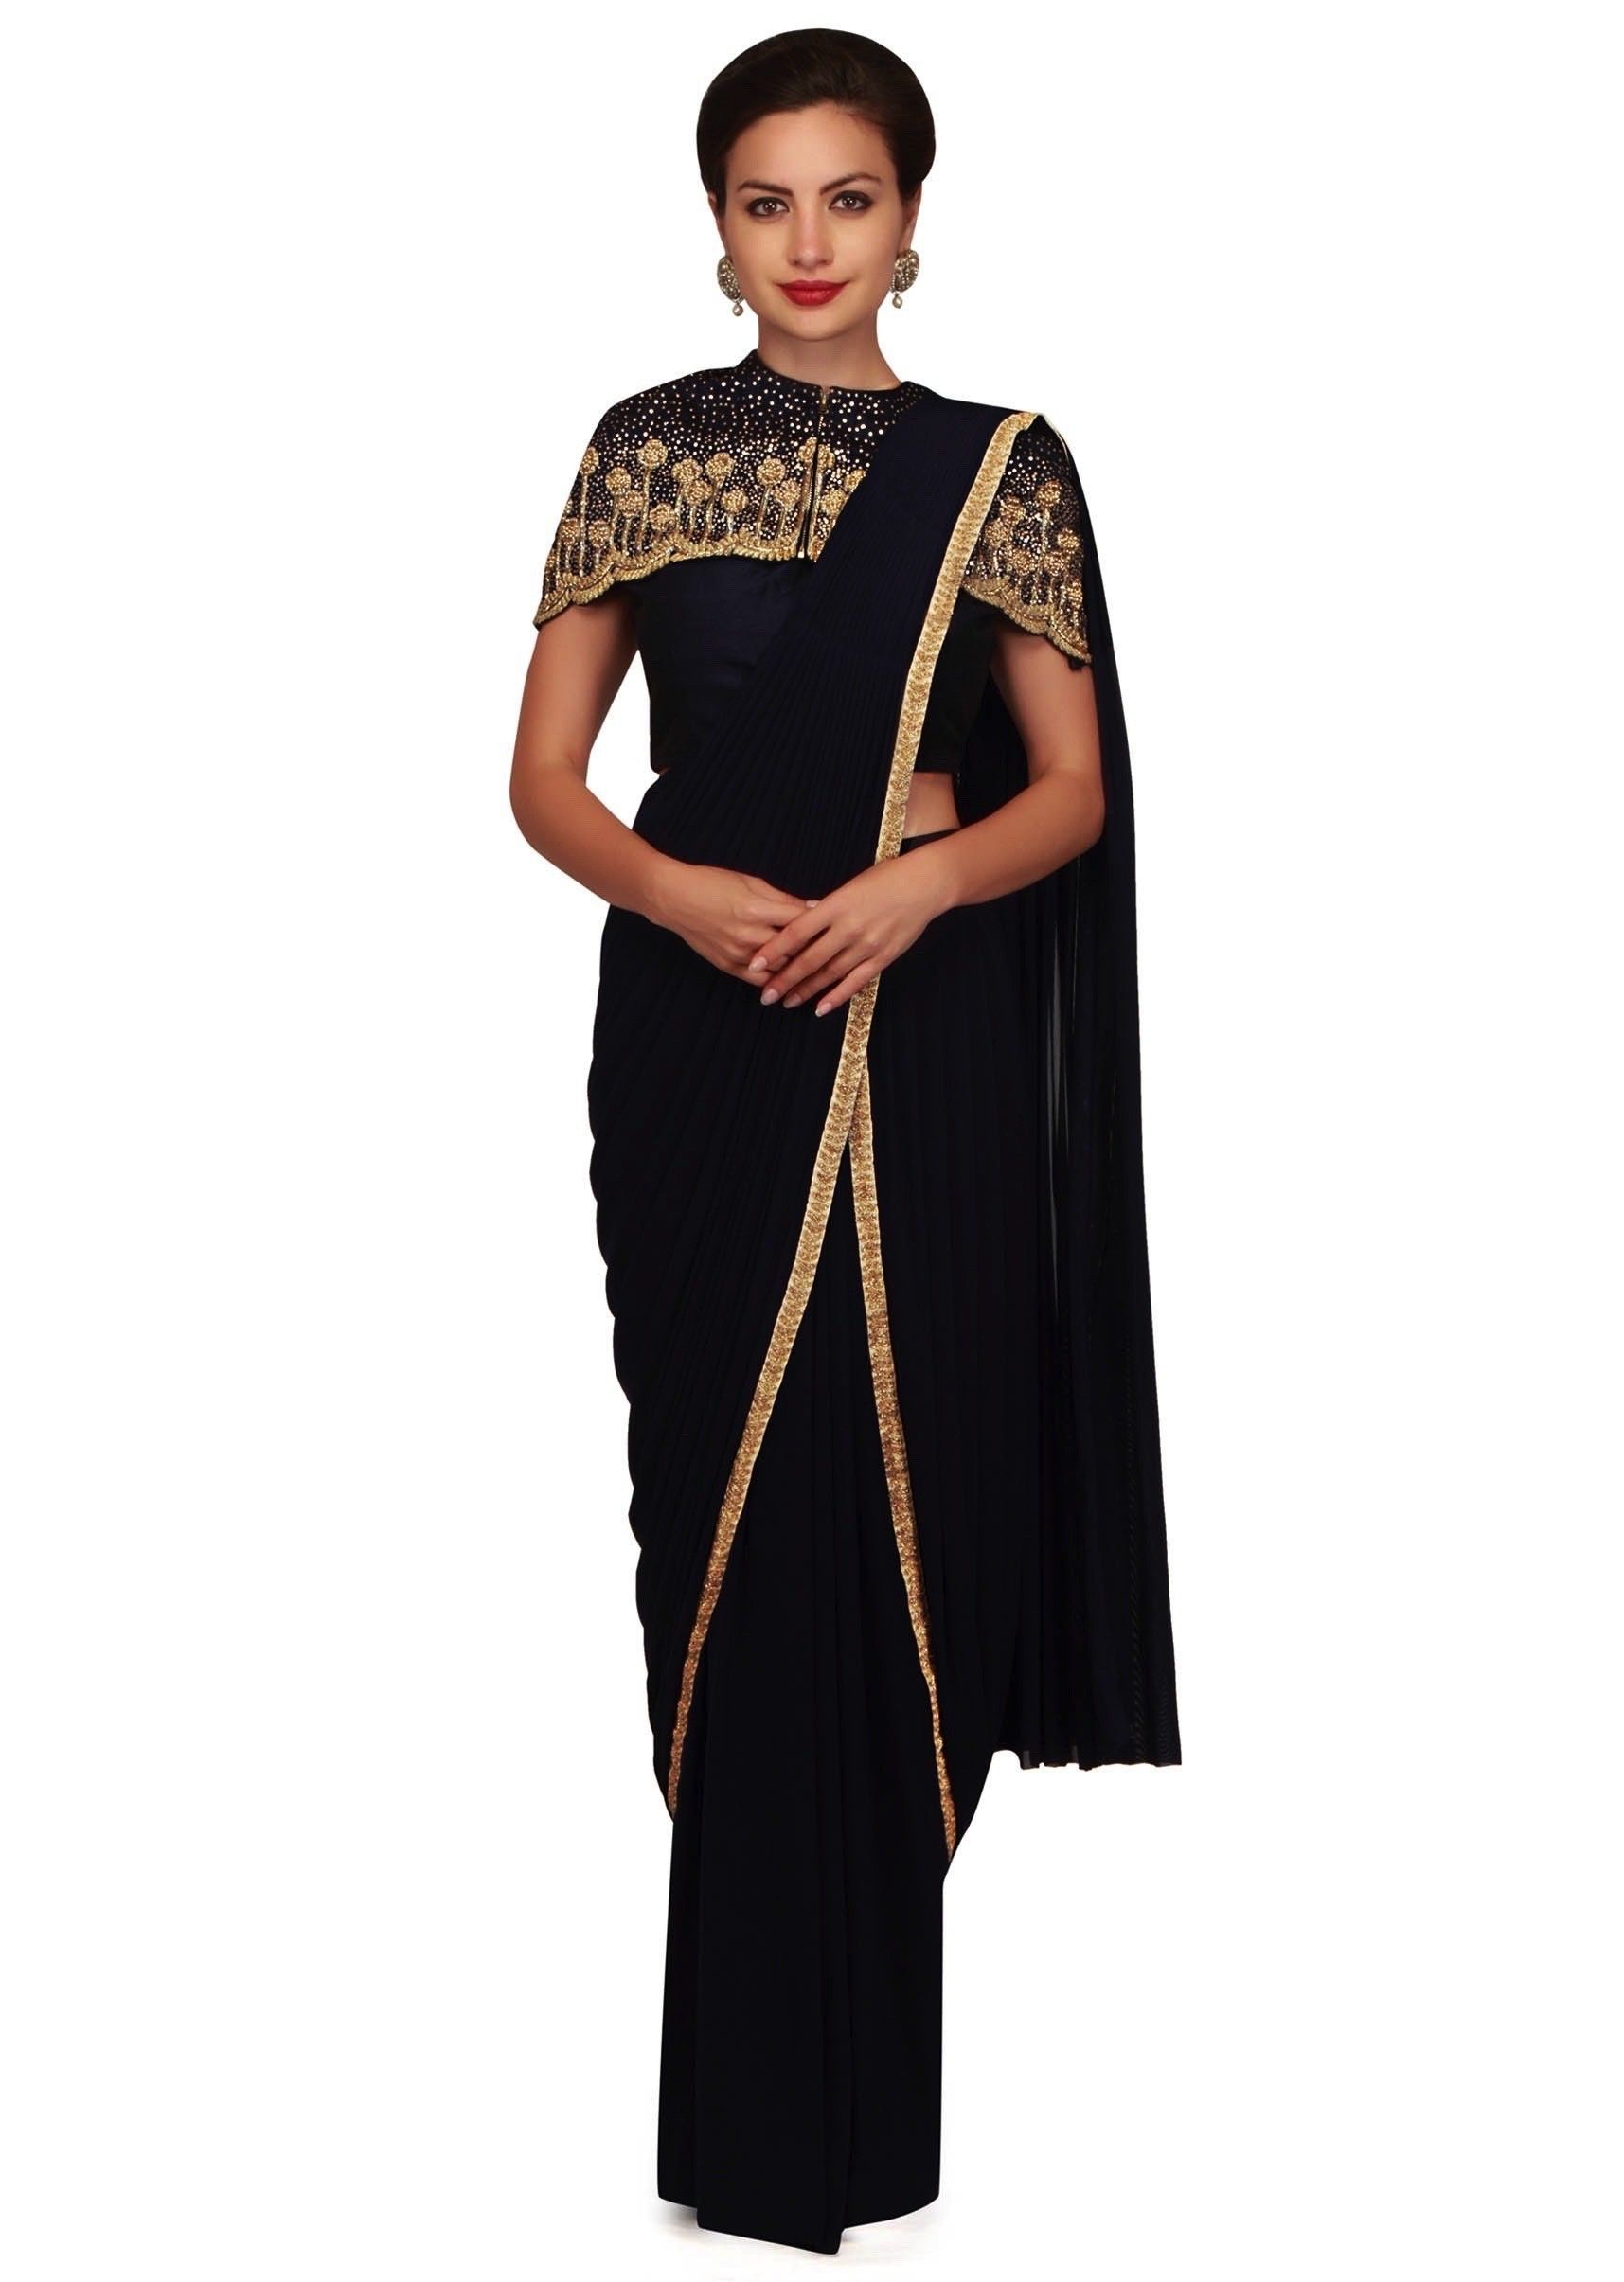 3c2aad5325 ‌Navy blue pre stitched saree featuring in lycra net. Matched with navy  blue blouse and fancy cape in sequin embroidery.